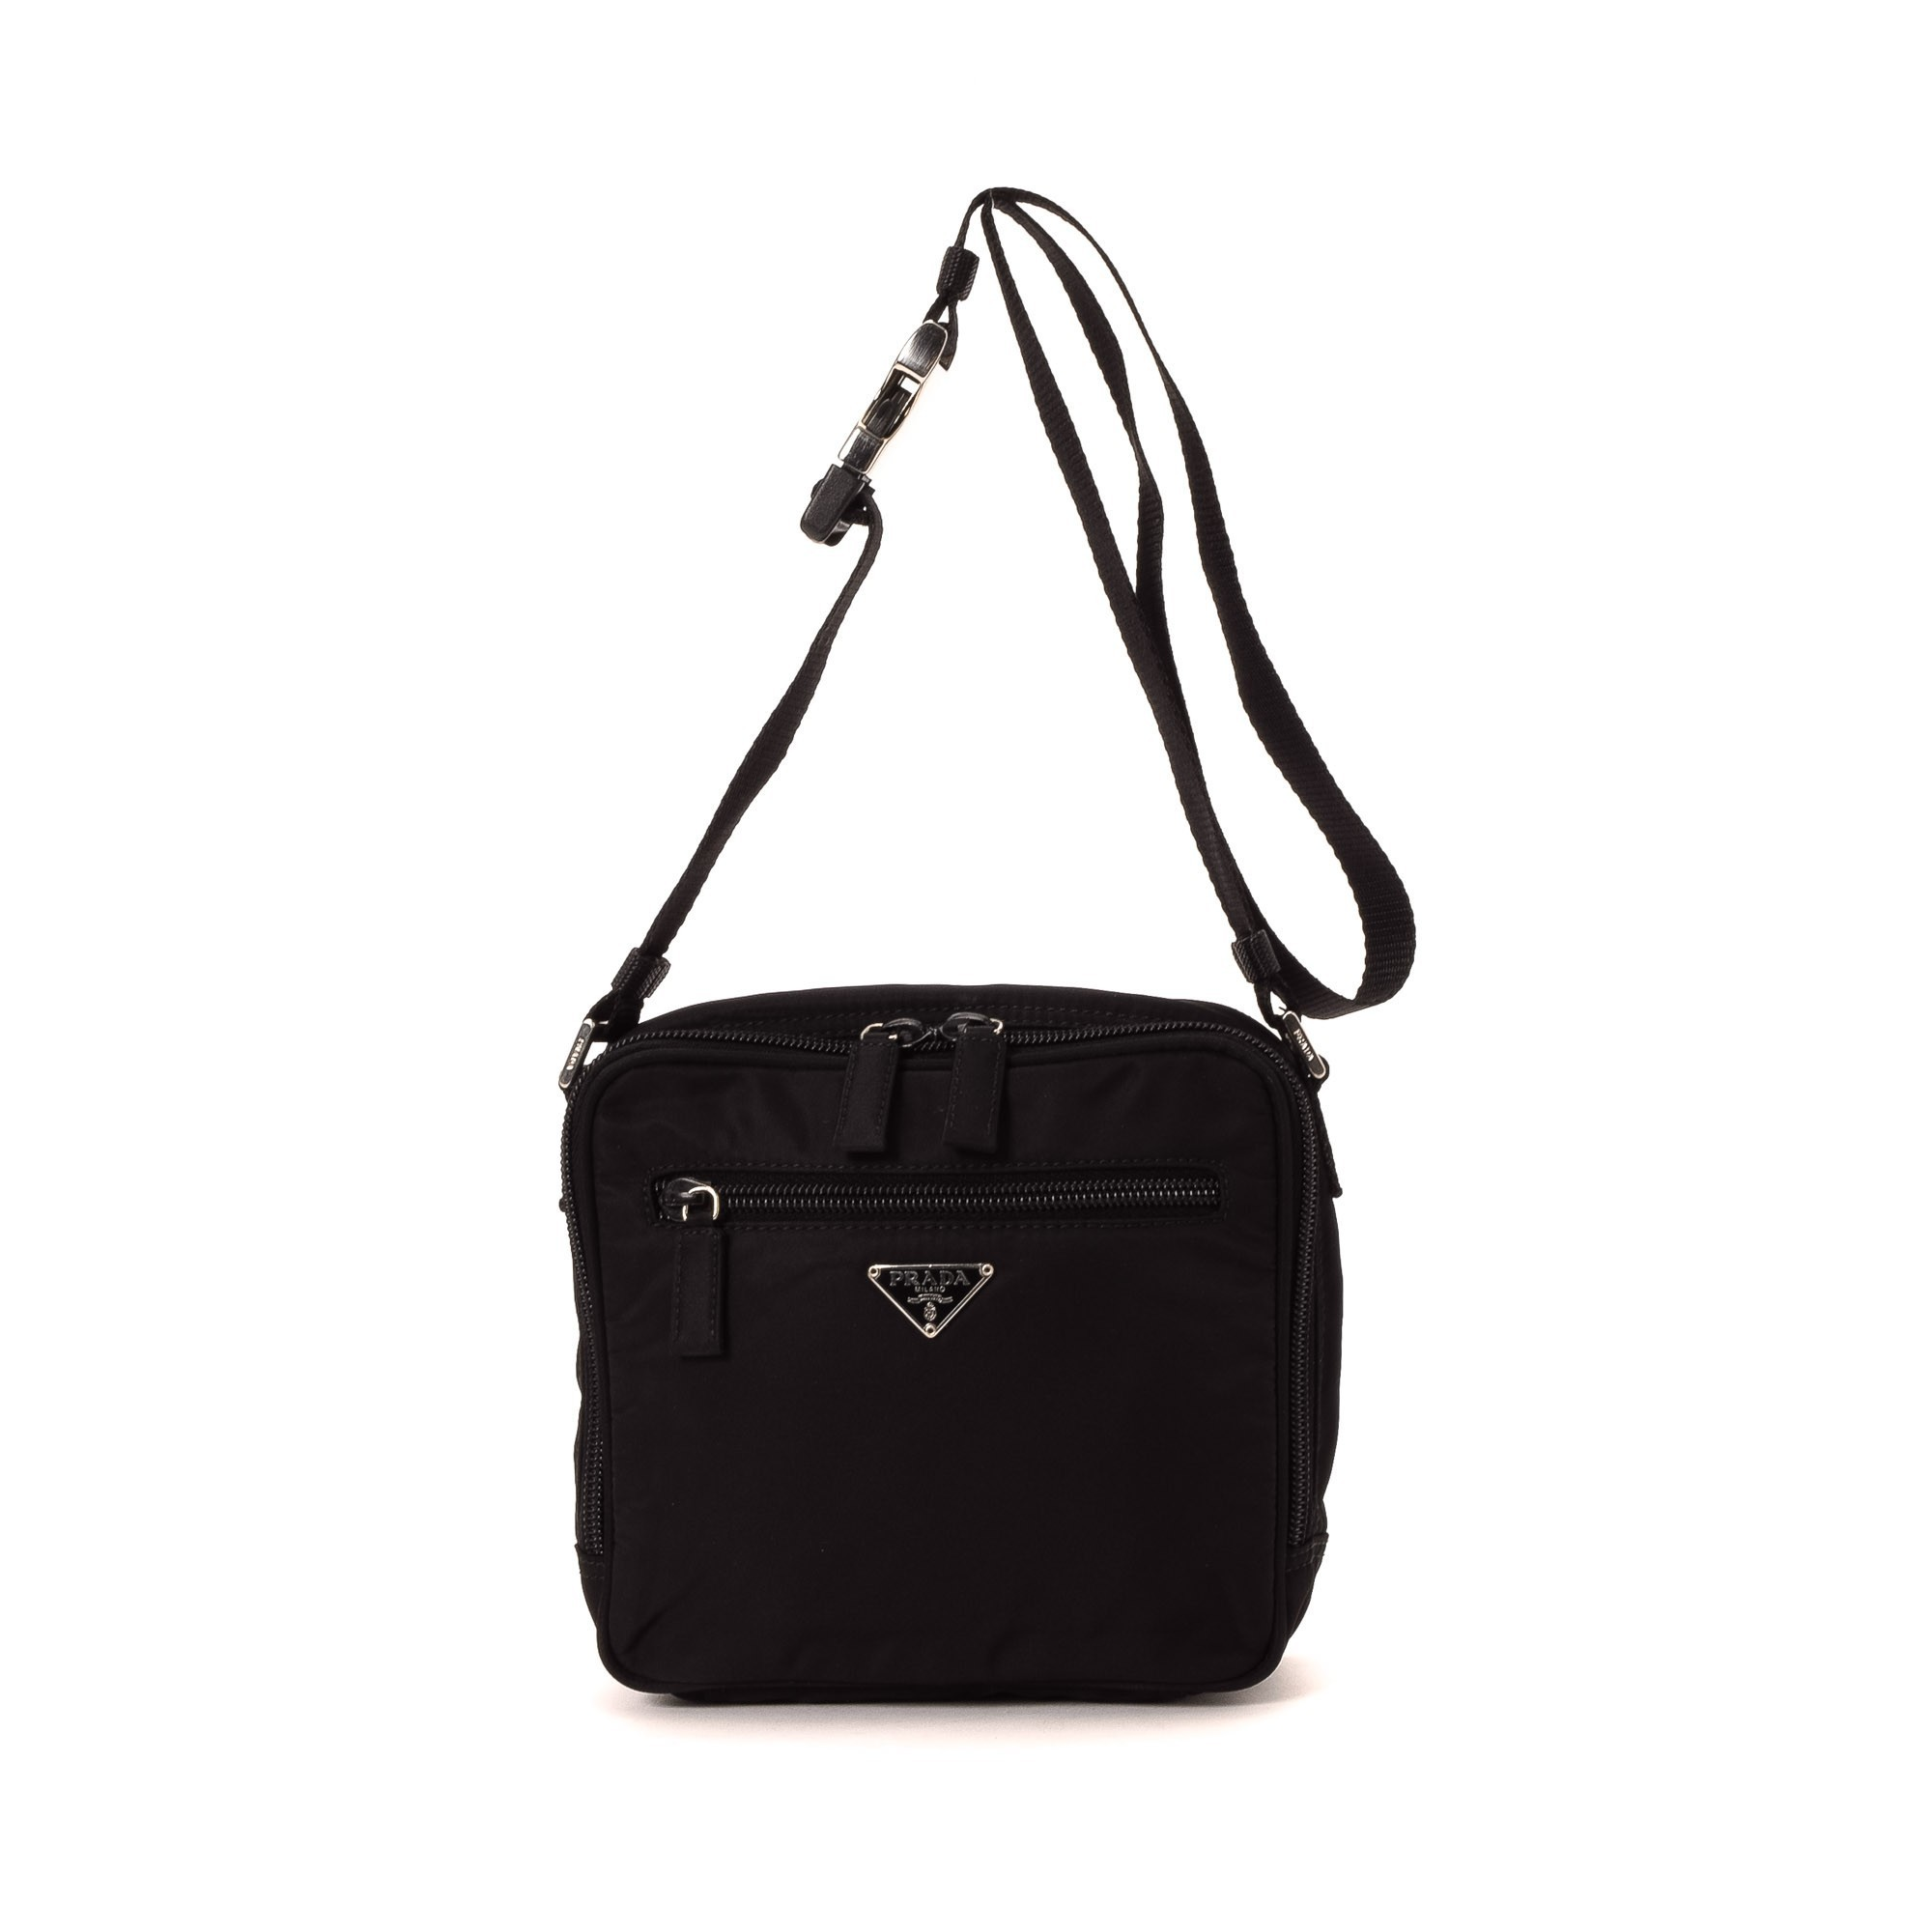 Prada Shoulder Bag Nylon Black Handbag Prada